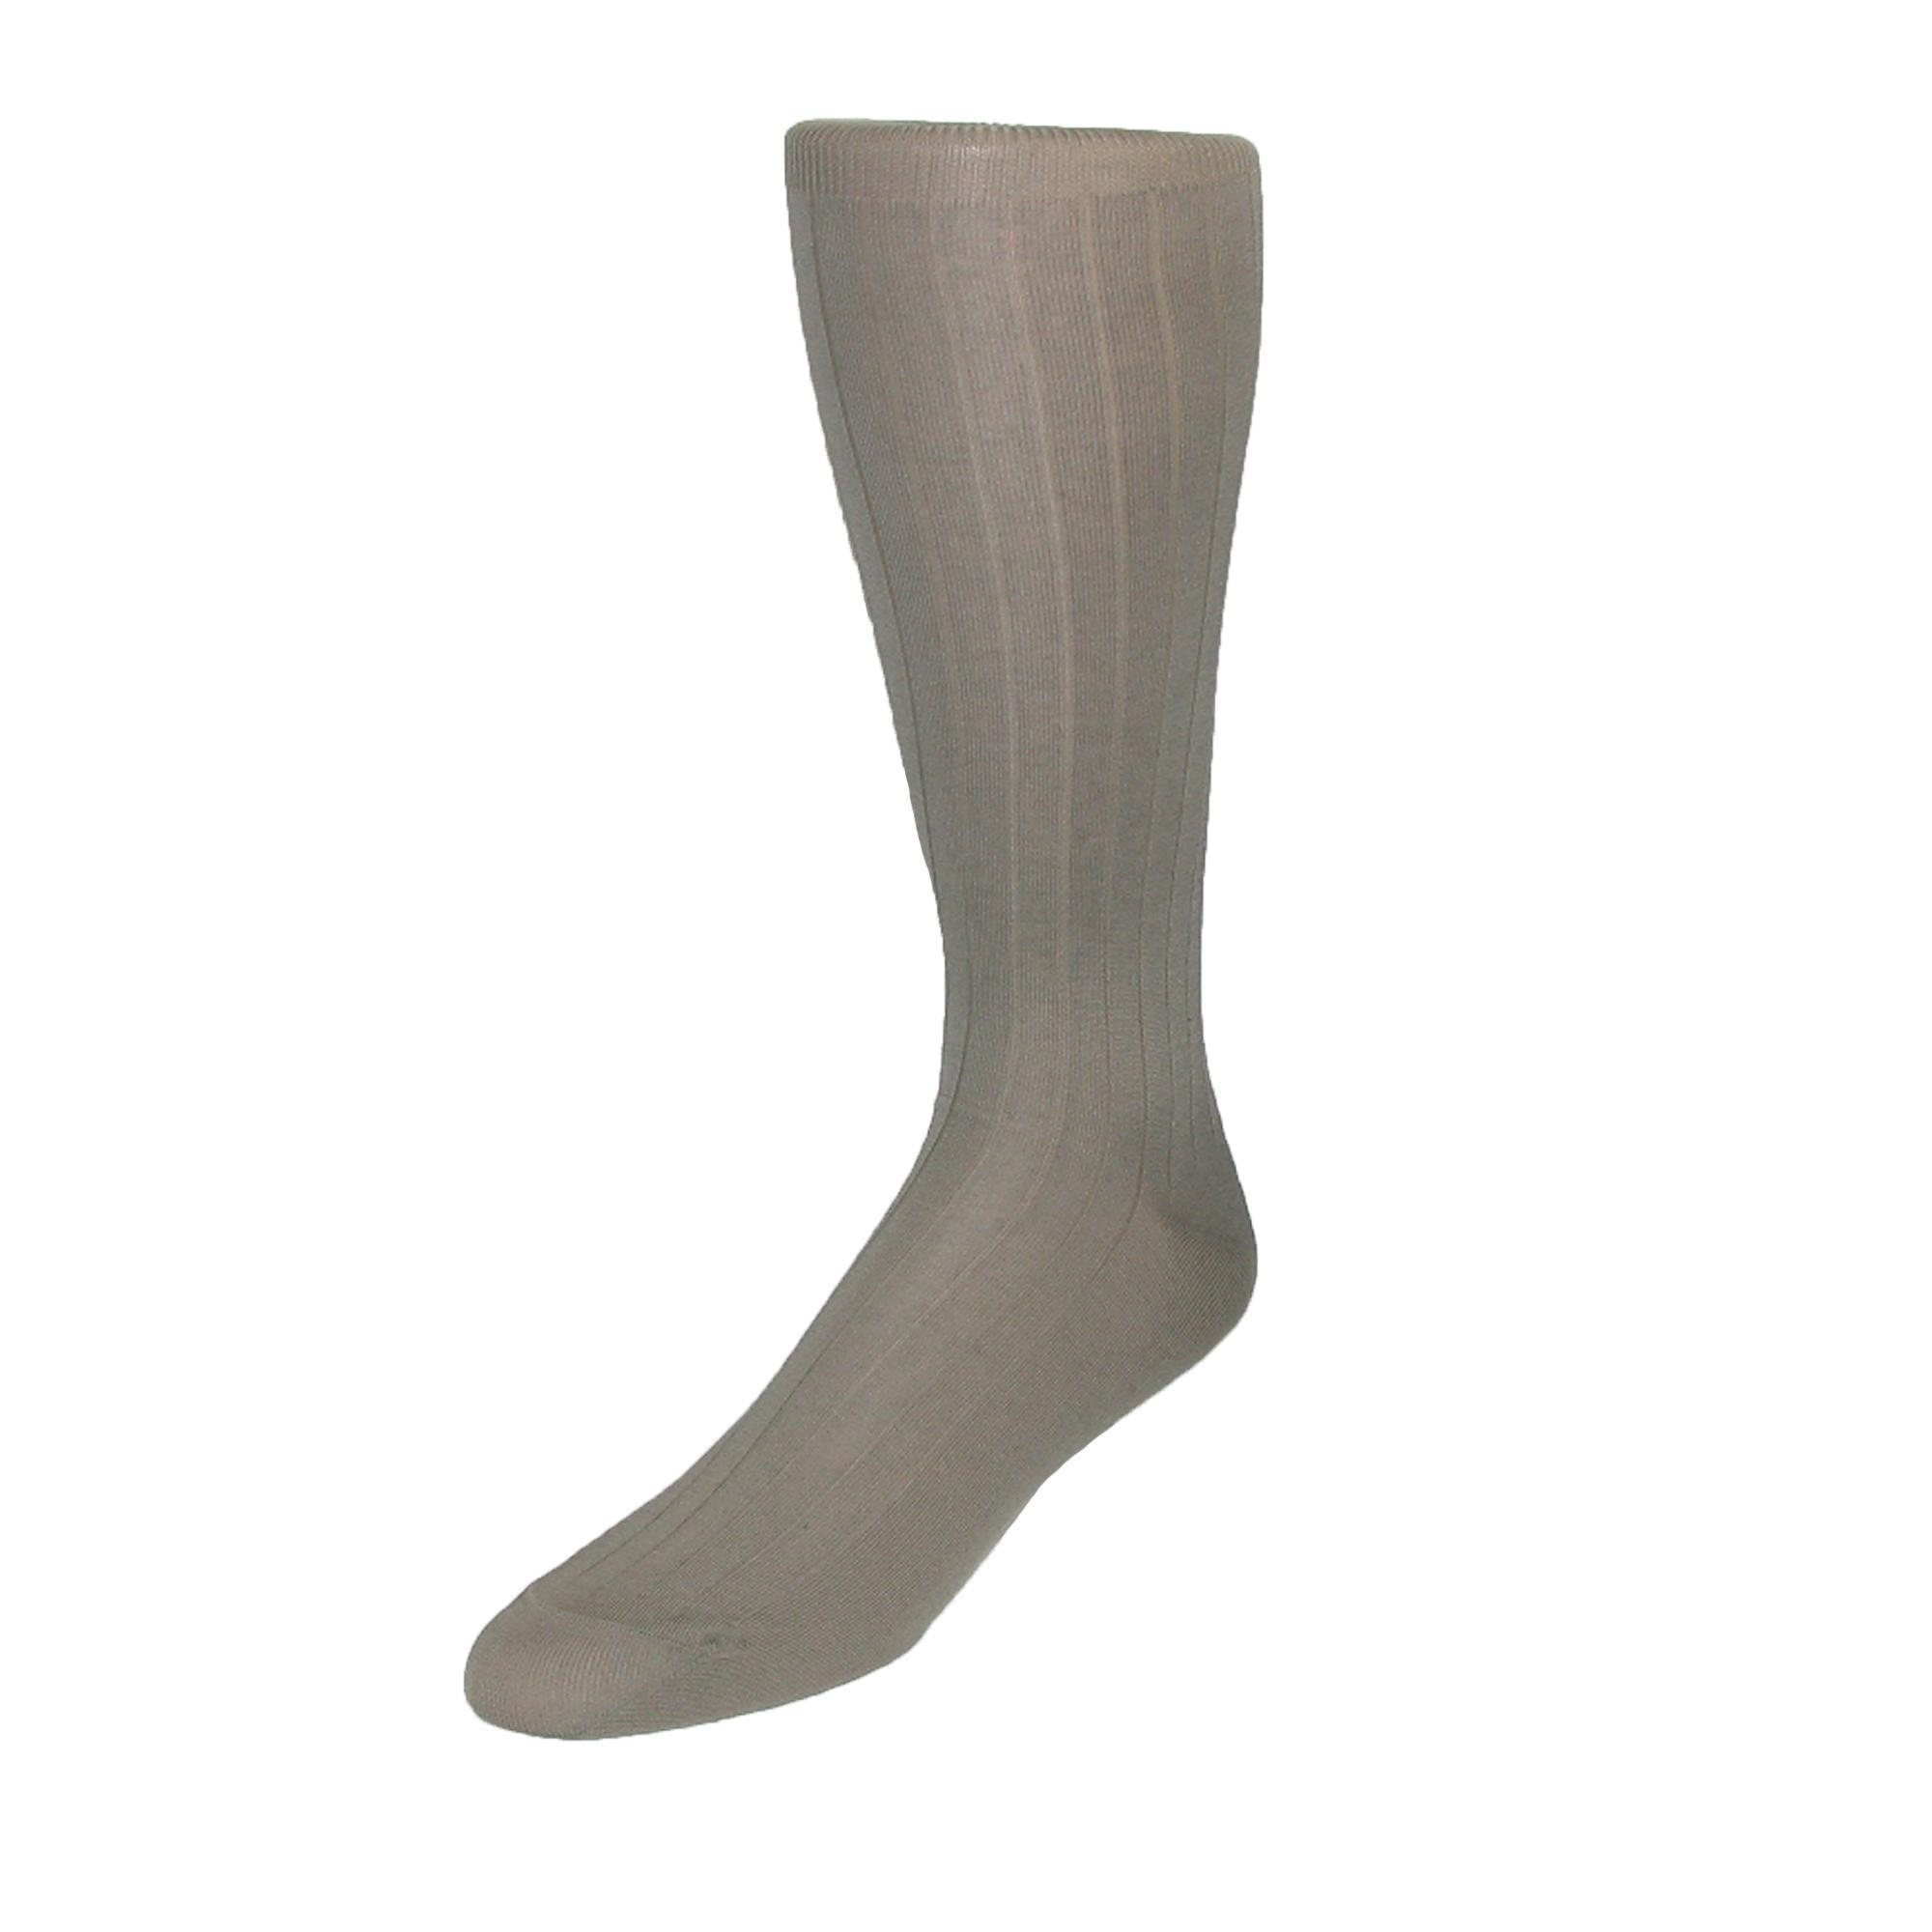 Windsor_Collection_Men's_Cotton_Over_the_Calf_Dress_Trouser_Socks_-